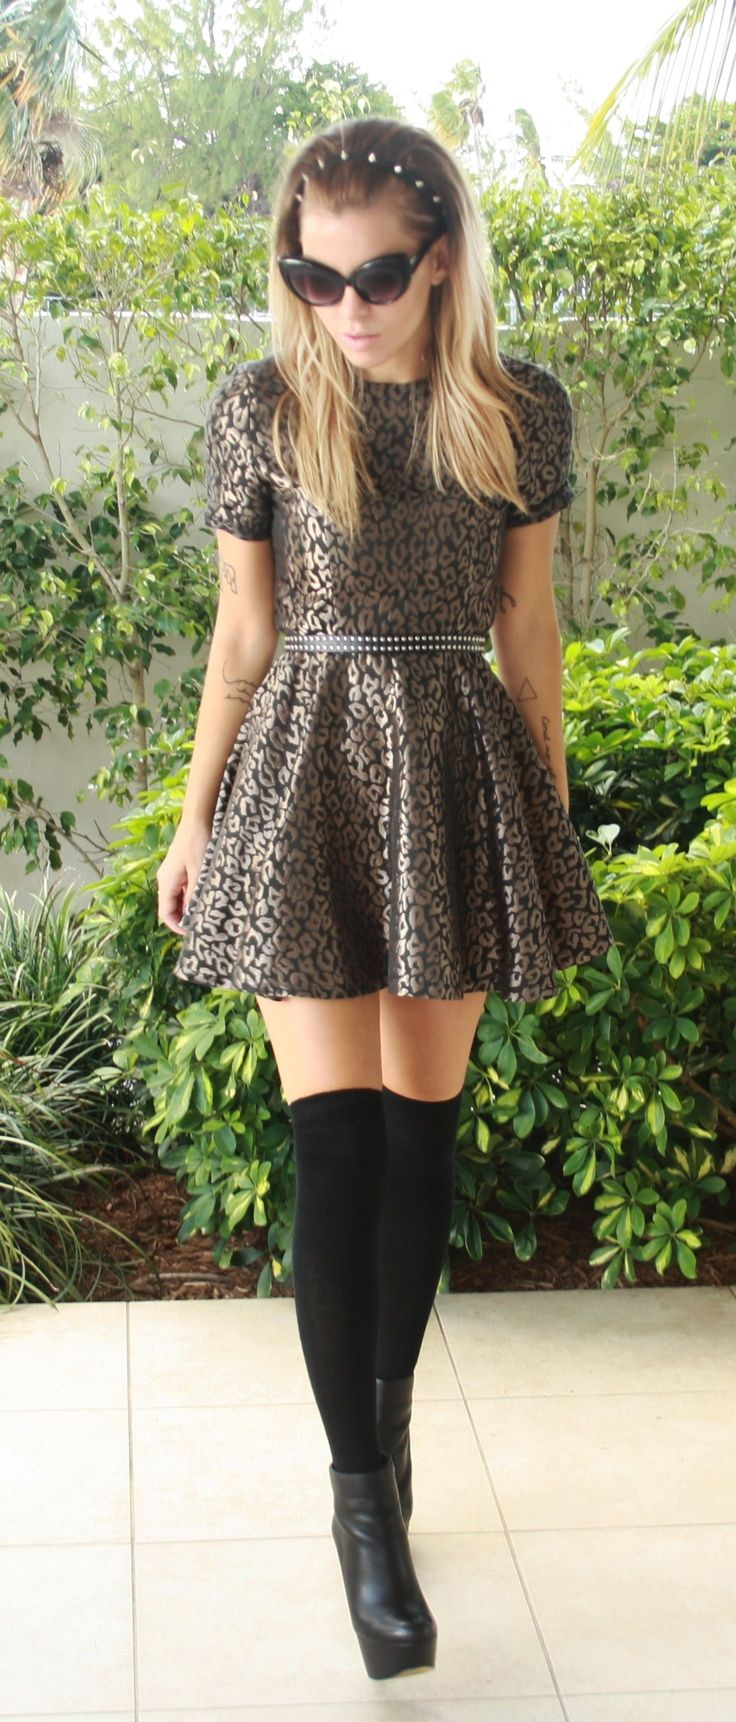 Metallic leopard dress knee high socks medias pinterest